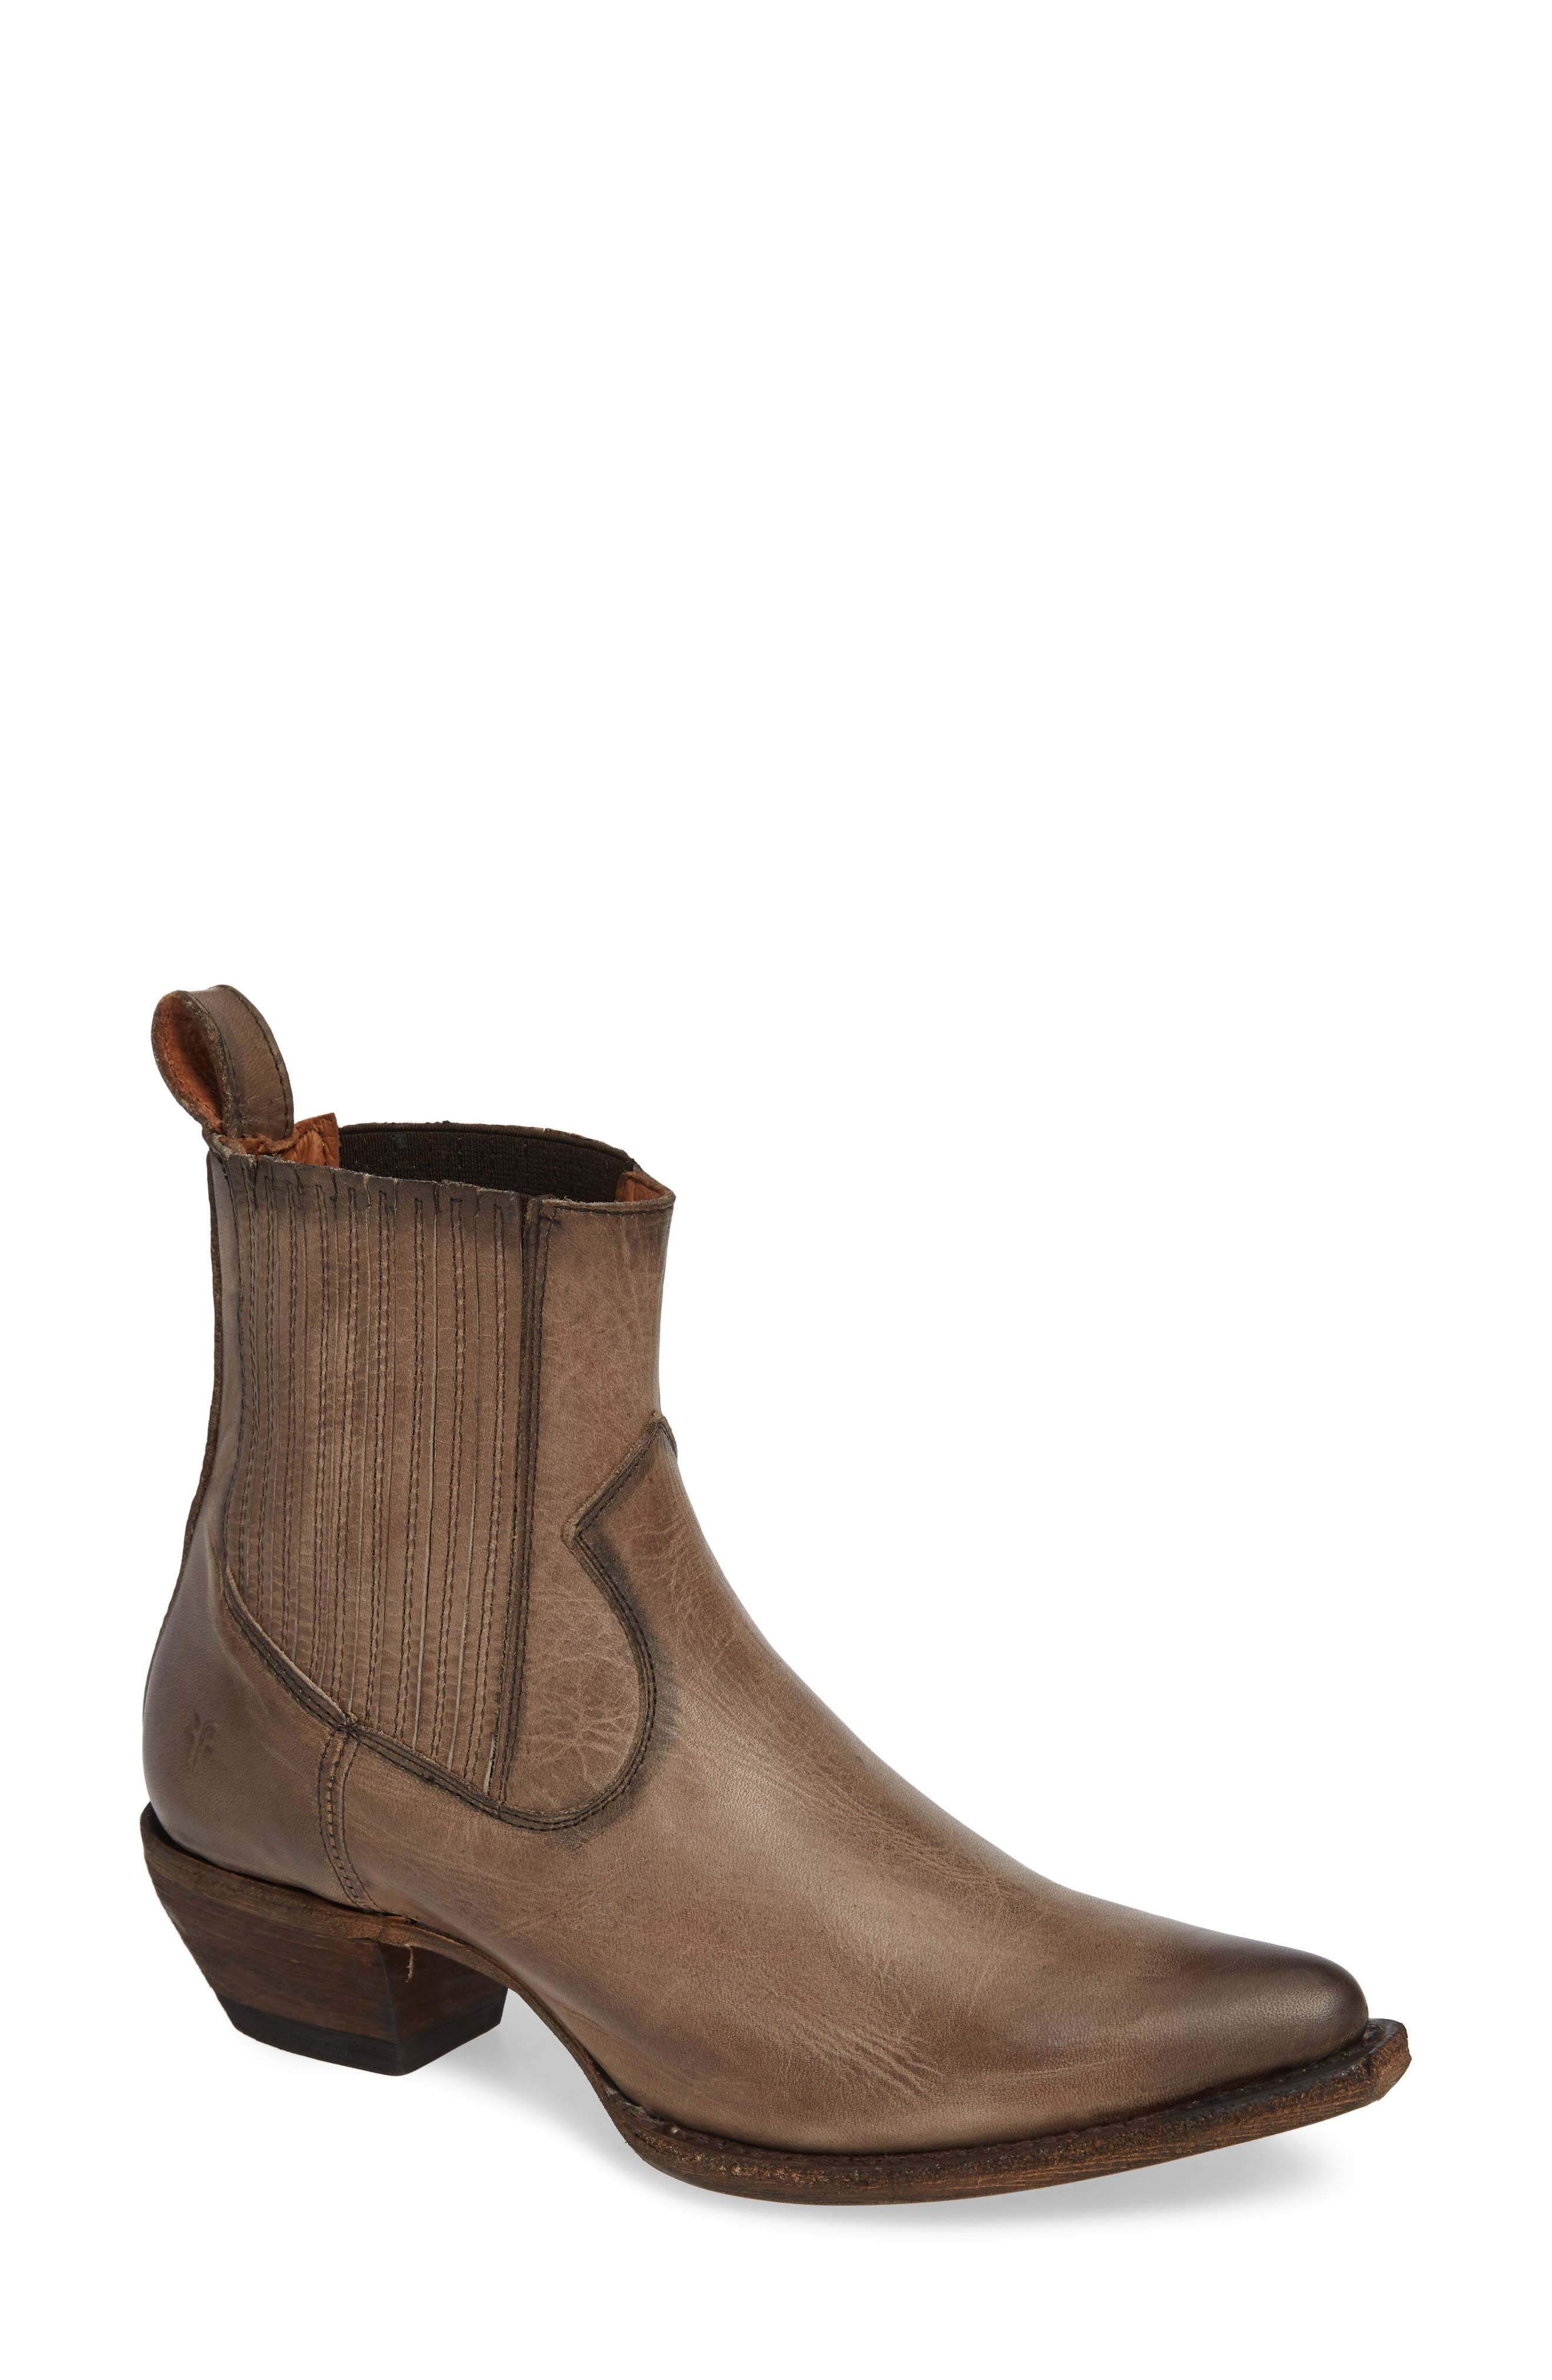 Sacha Western Bootie,                         Main,                         color, STONE LEATHER